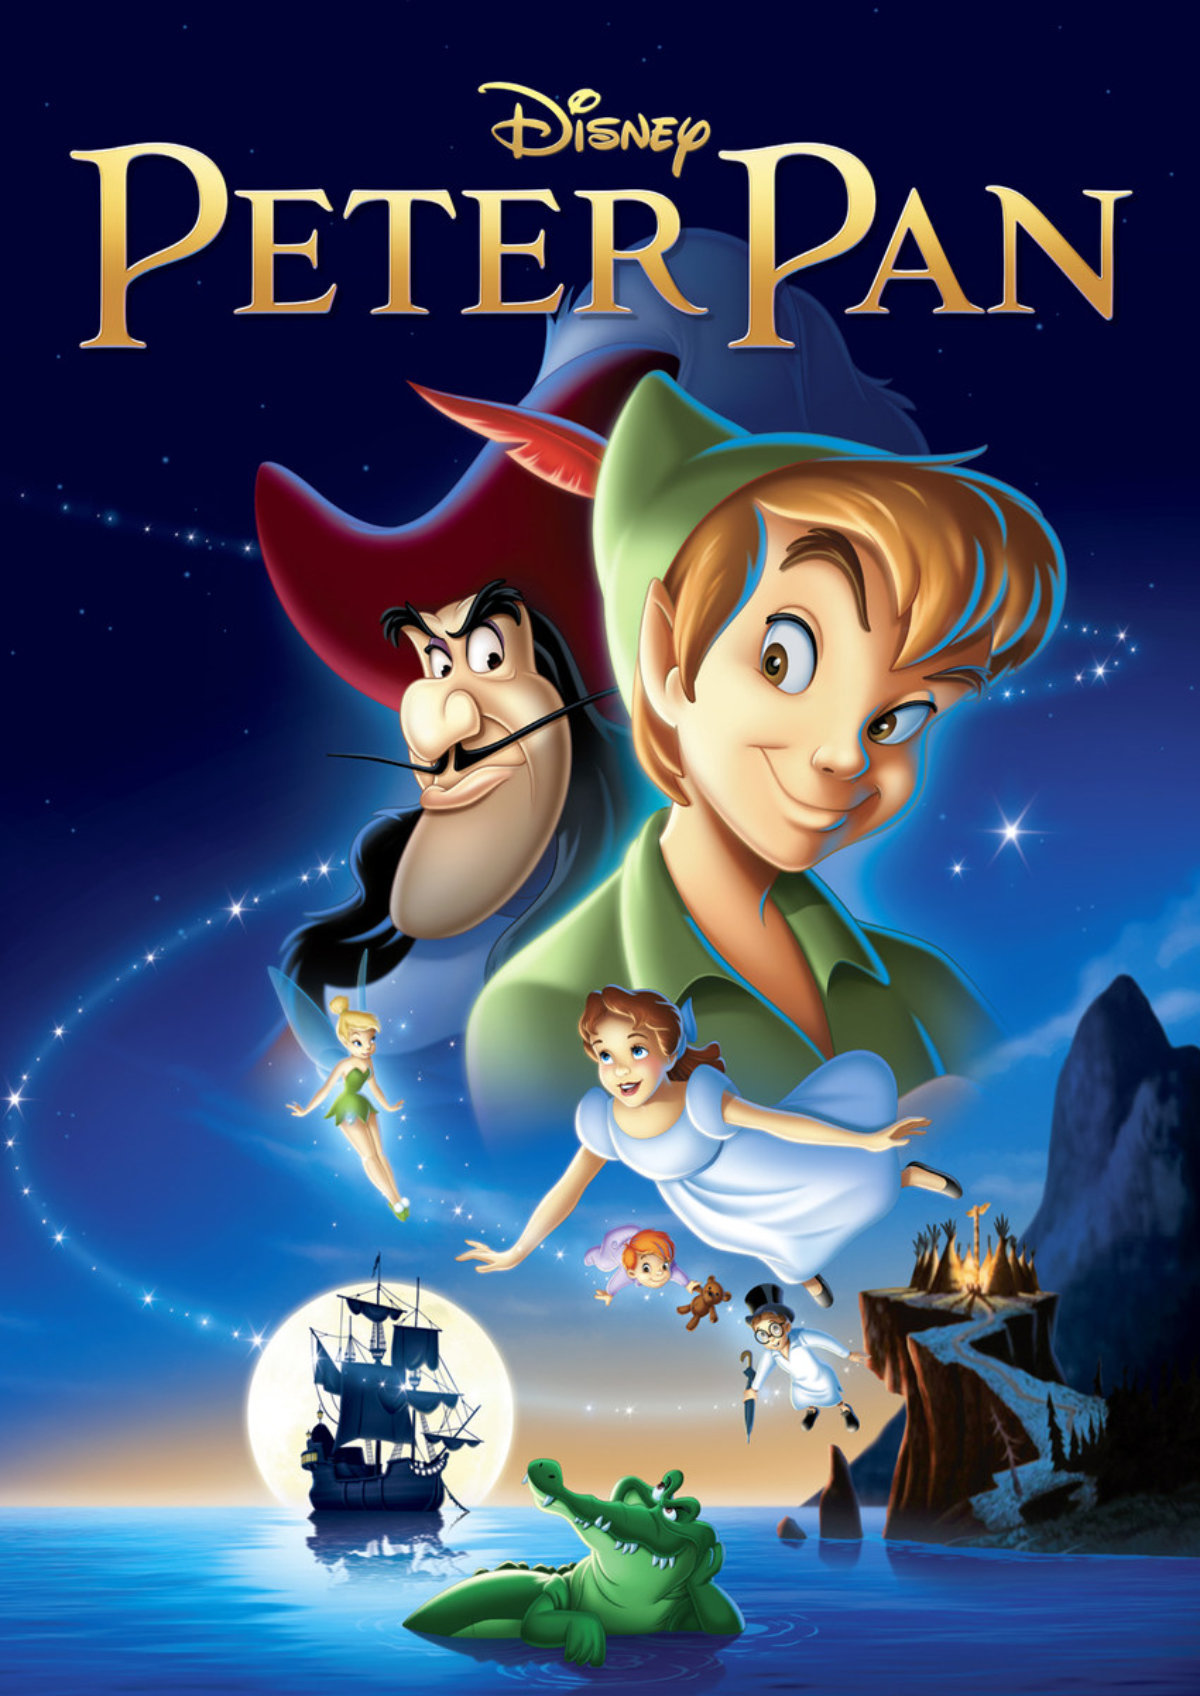 'Peter Pan' movie poster